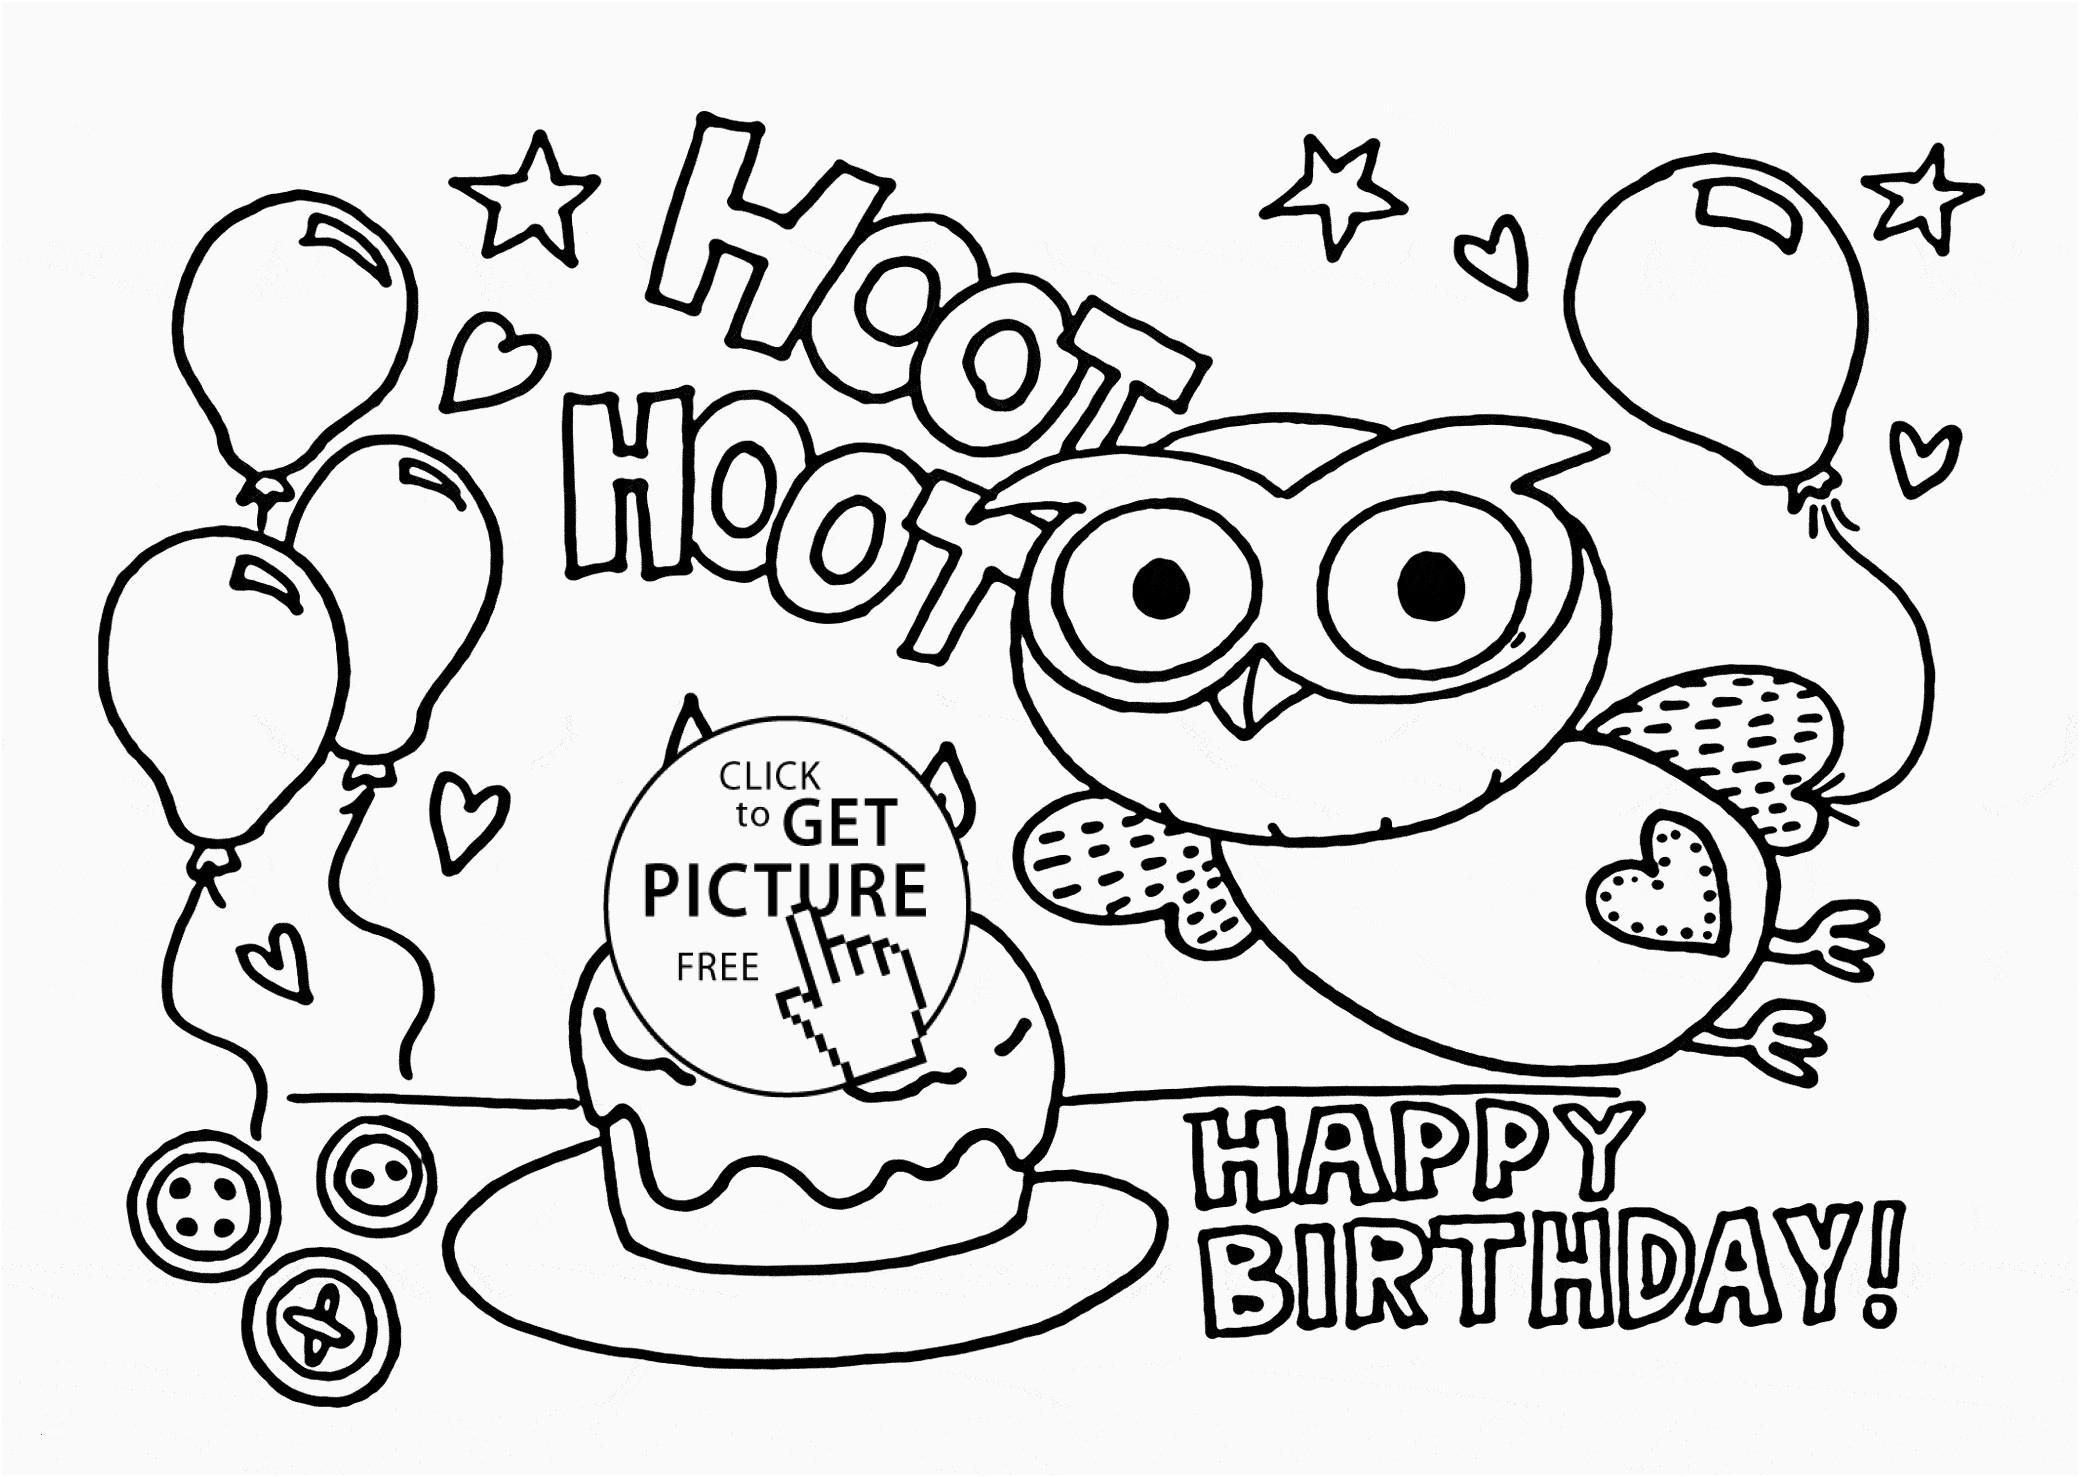 20 Birthday Presents Coloring Pages Collection - Coloring Sheets